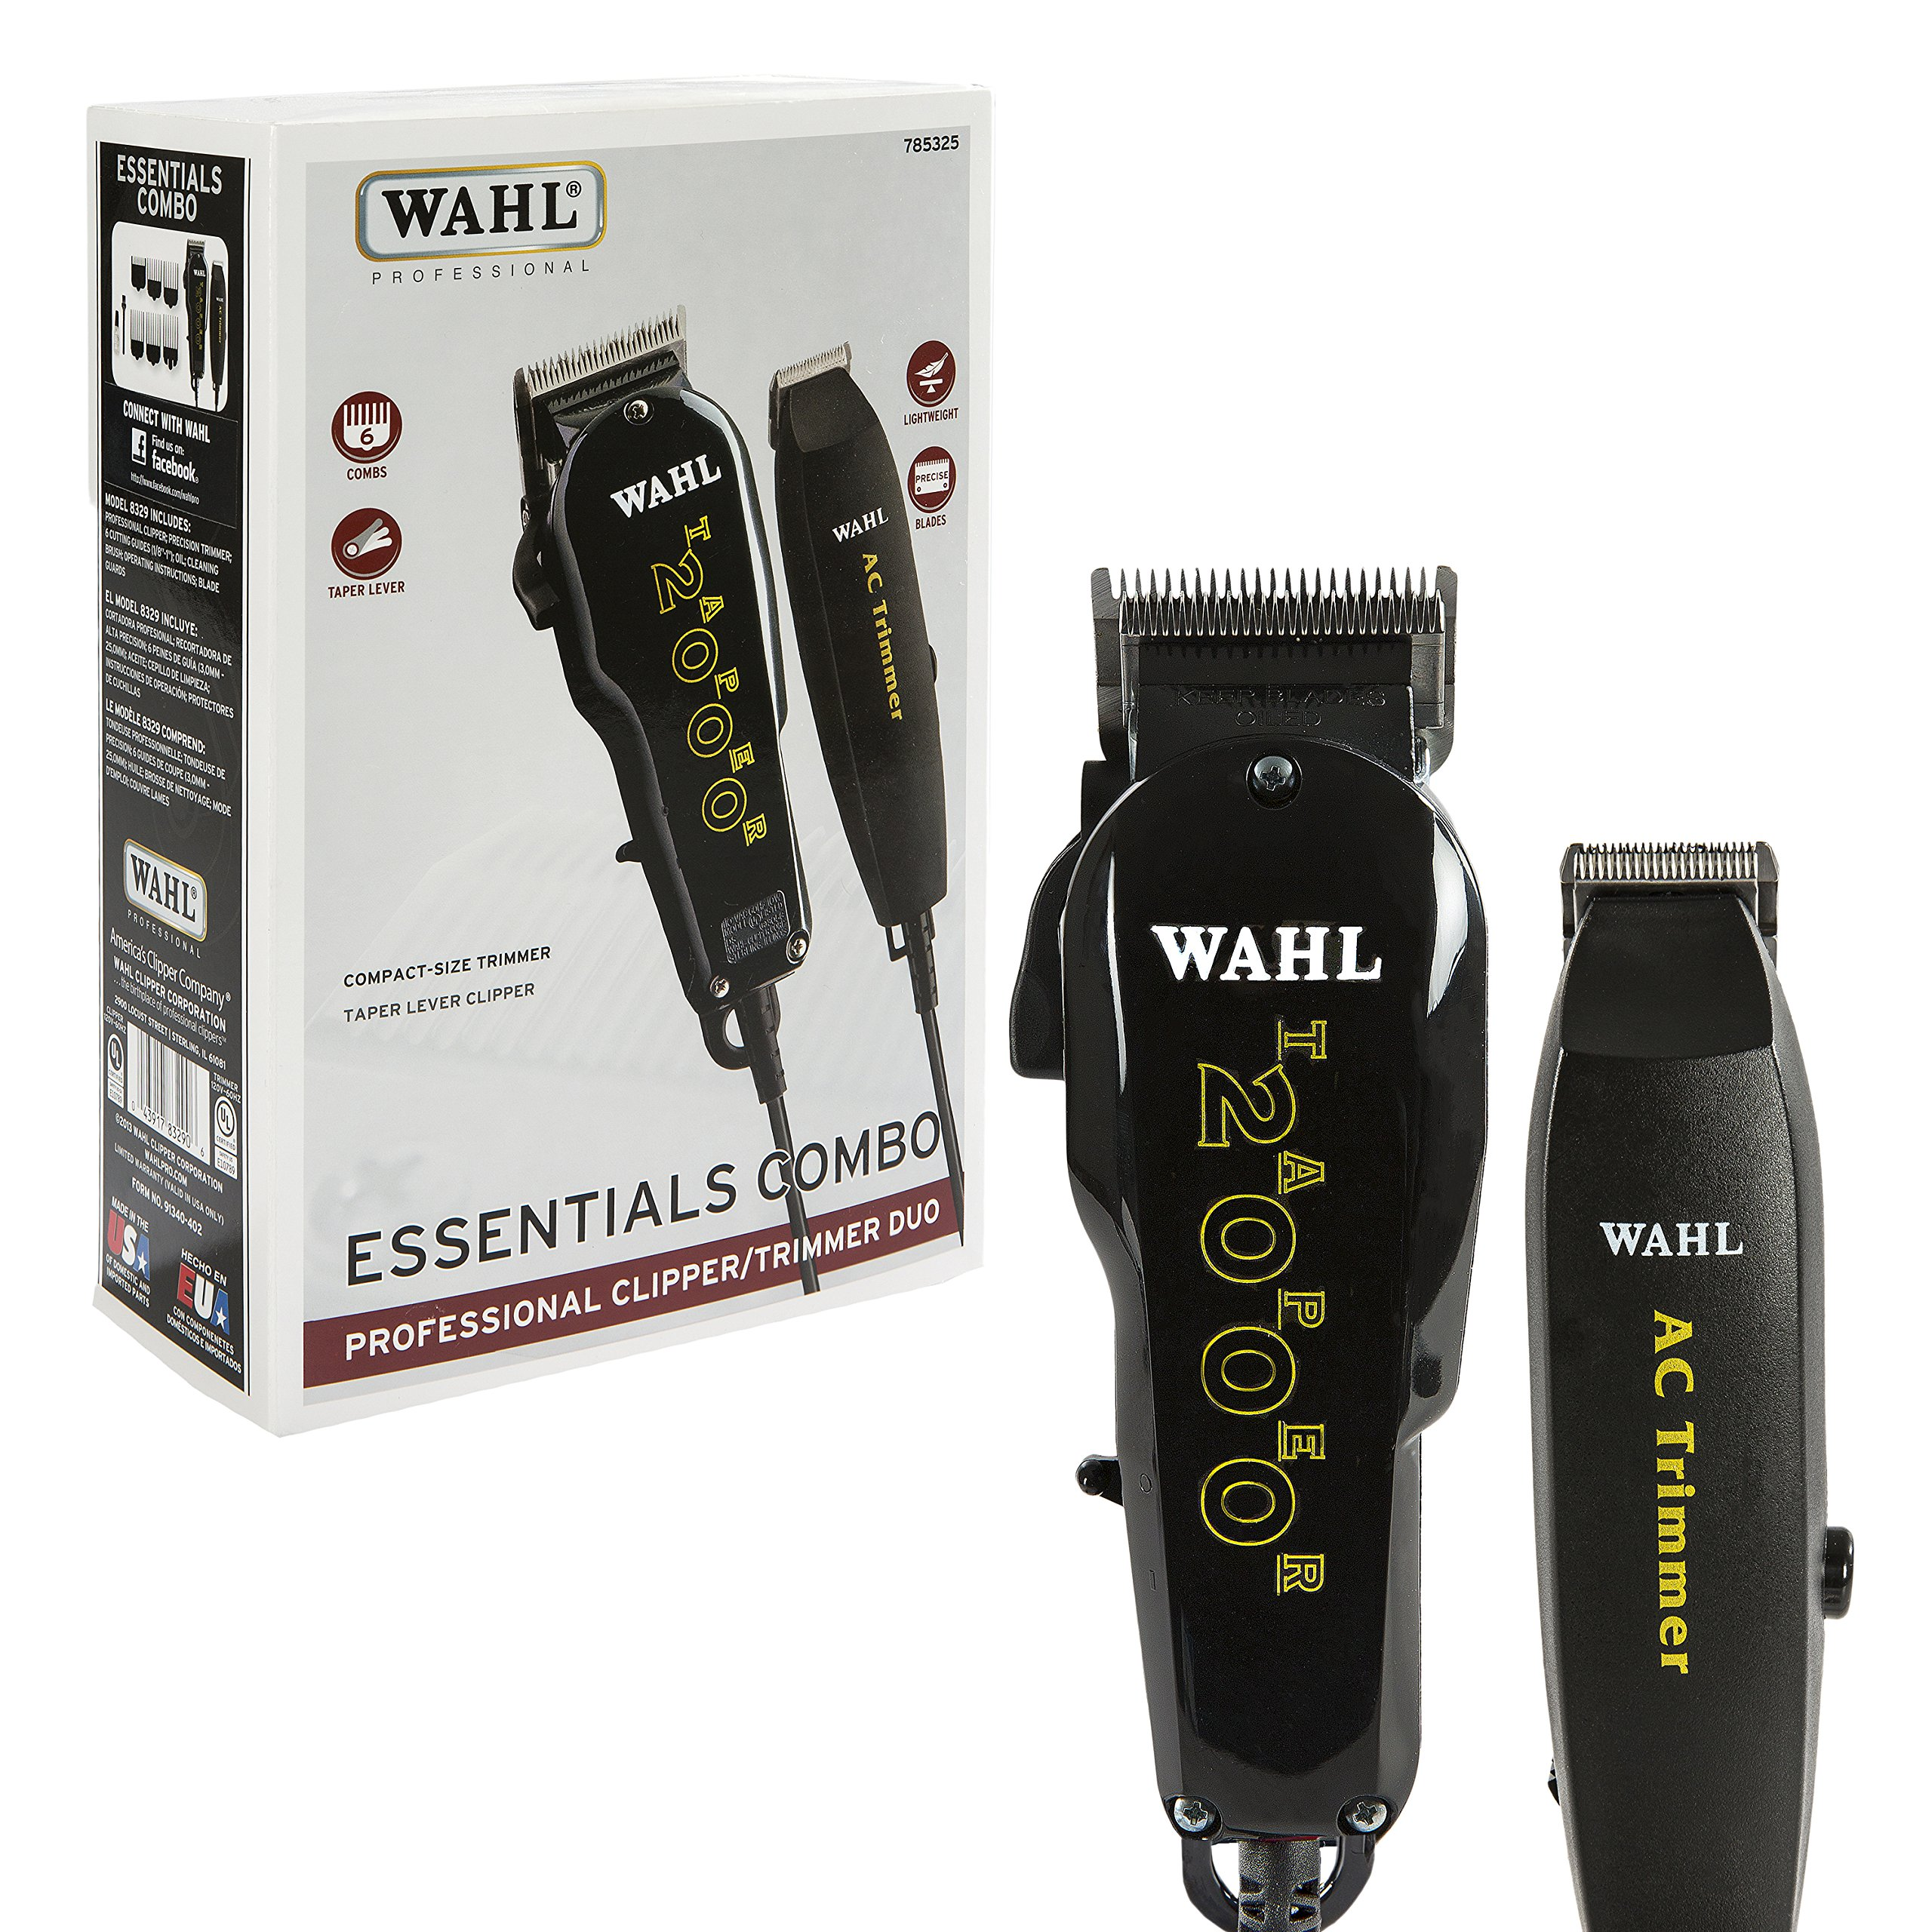 Wahl Professional Essentials Combo #8329 - Features the Taper 2000 Clipper and AC Trimmer - Great for Barbers, Stylists, and Beginning Artists - From Fading and Blending to Edging by Wahl Professional